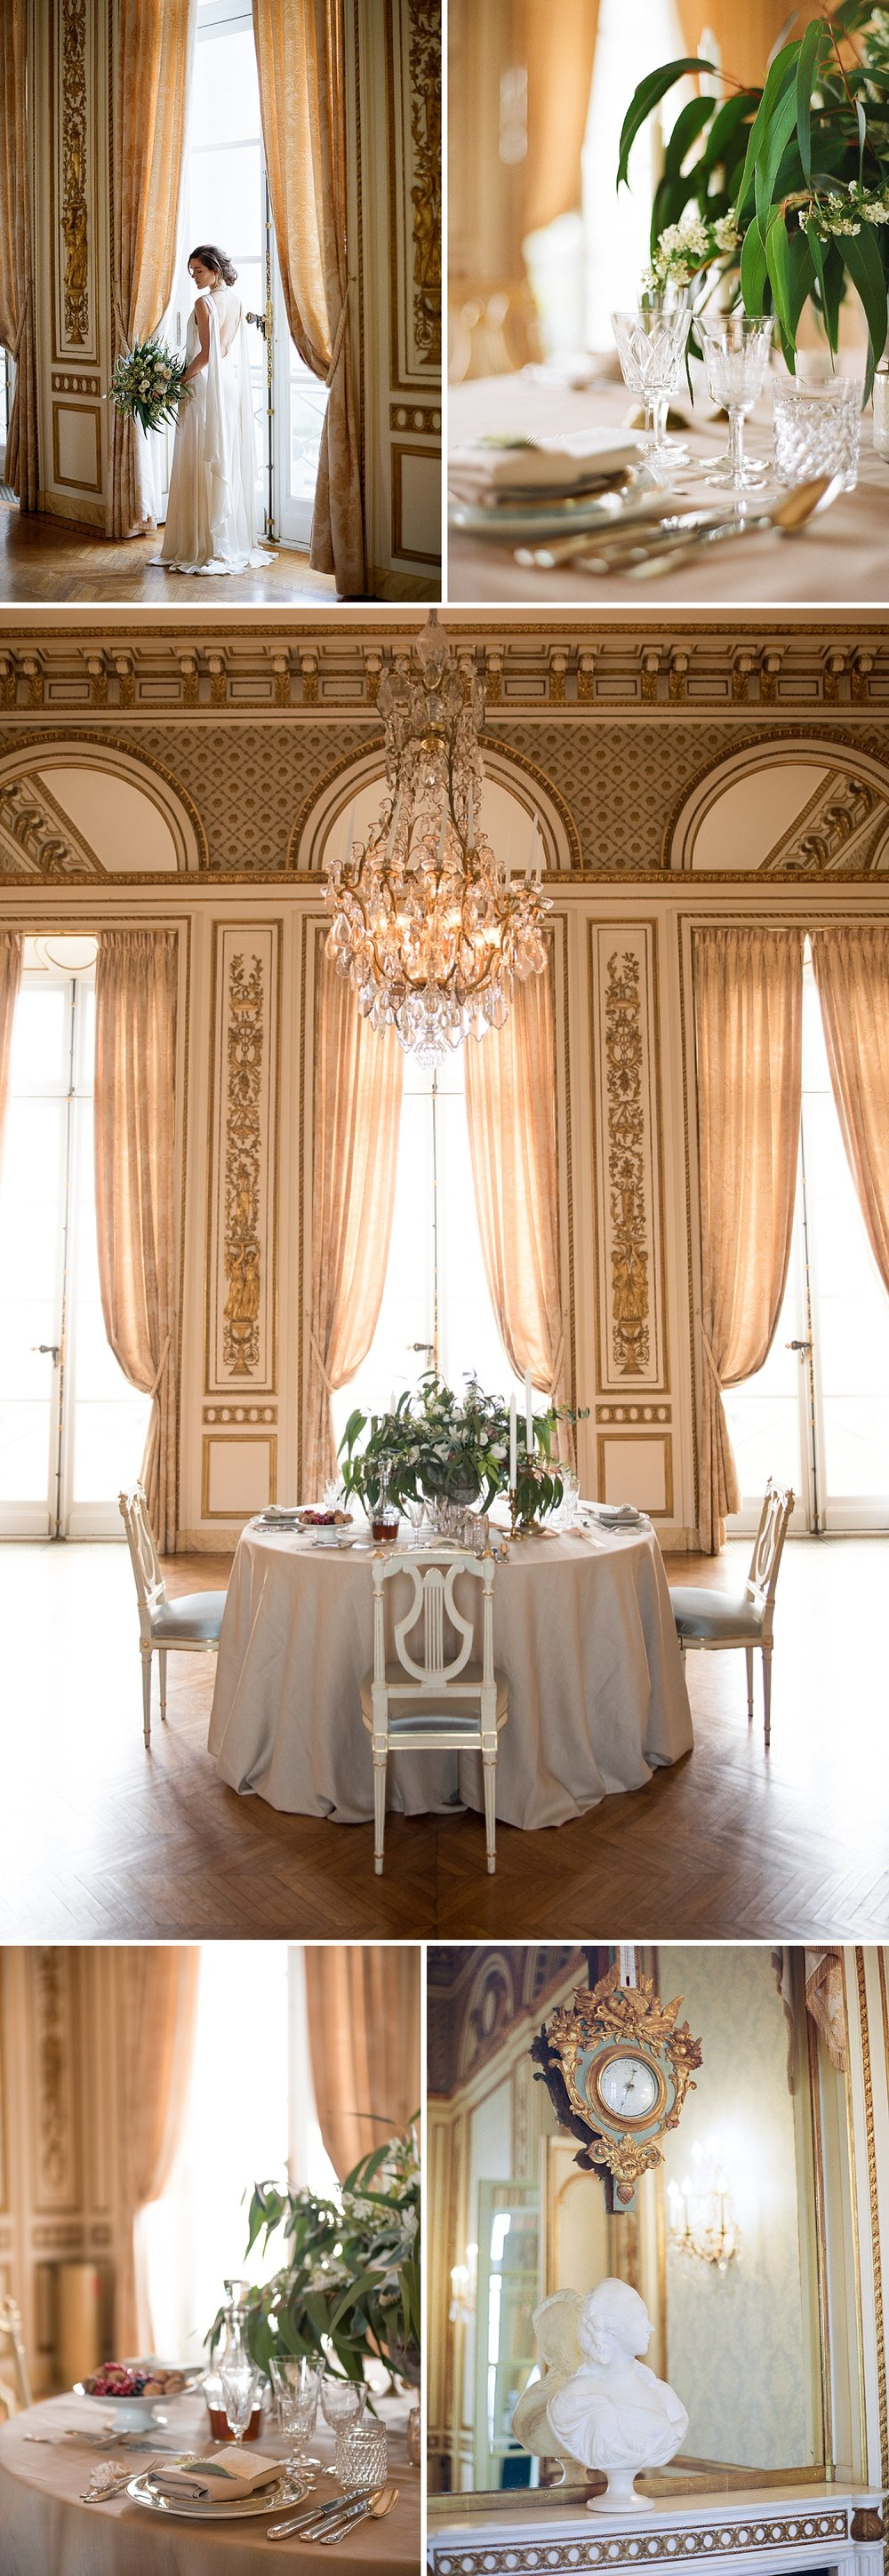 The gilt ballroom is a luxurious and opulent setting for a classic French reception; Sylvie Gil Photography